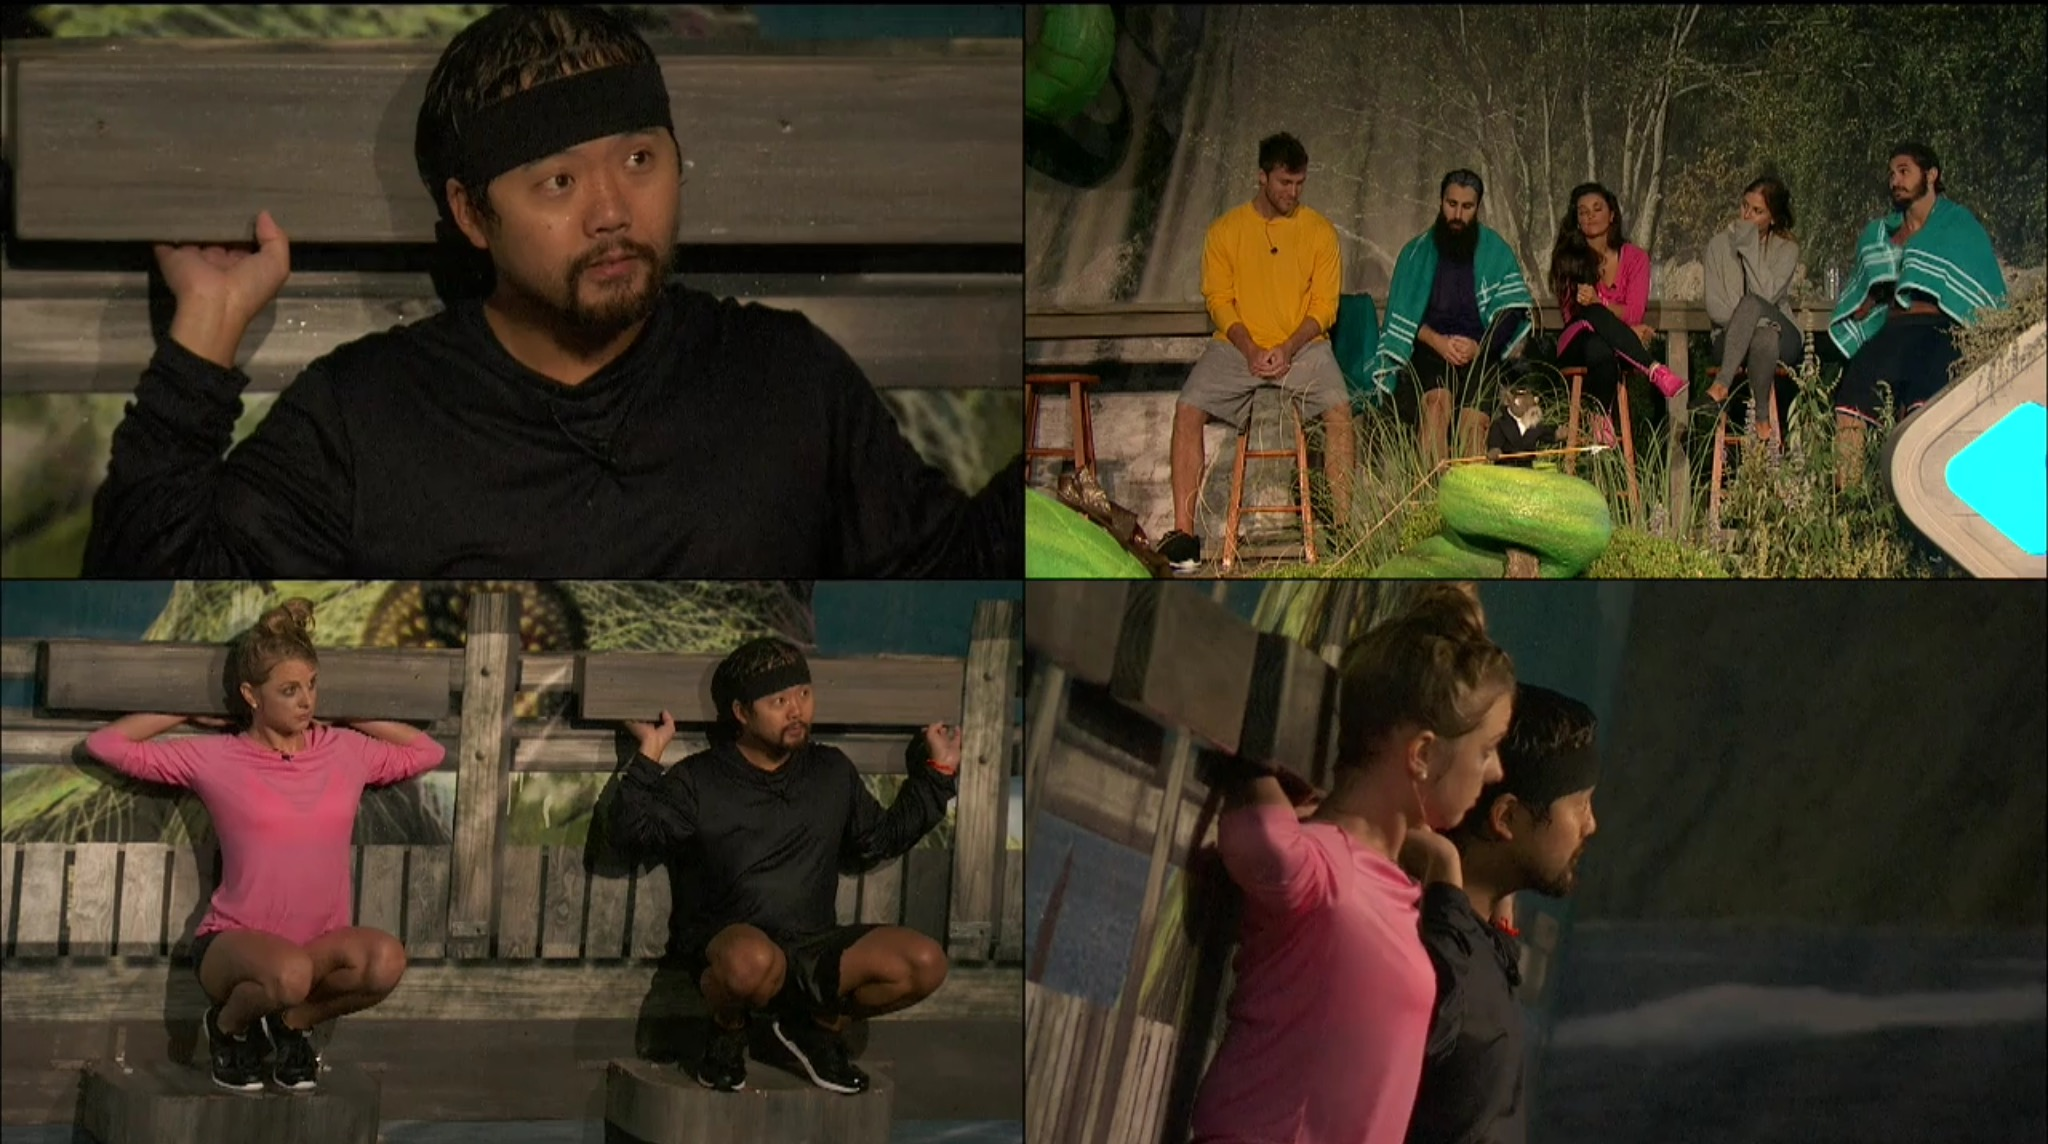 Big Brother 18-HOH Wk 10 comp